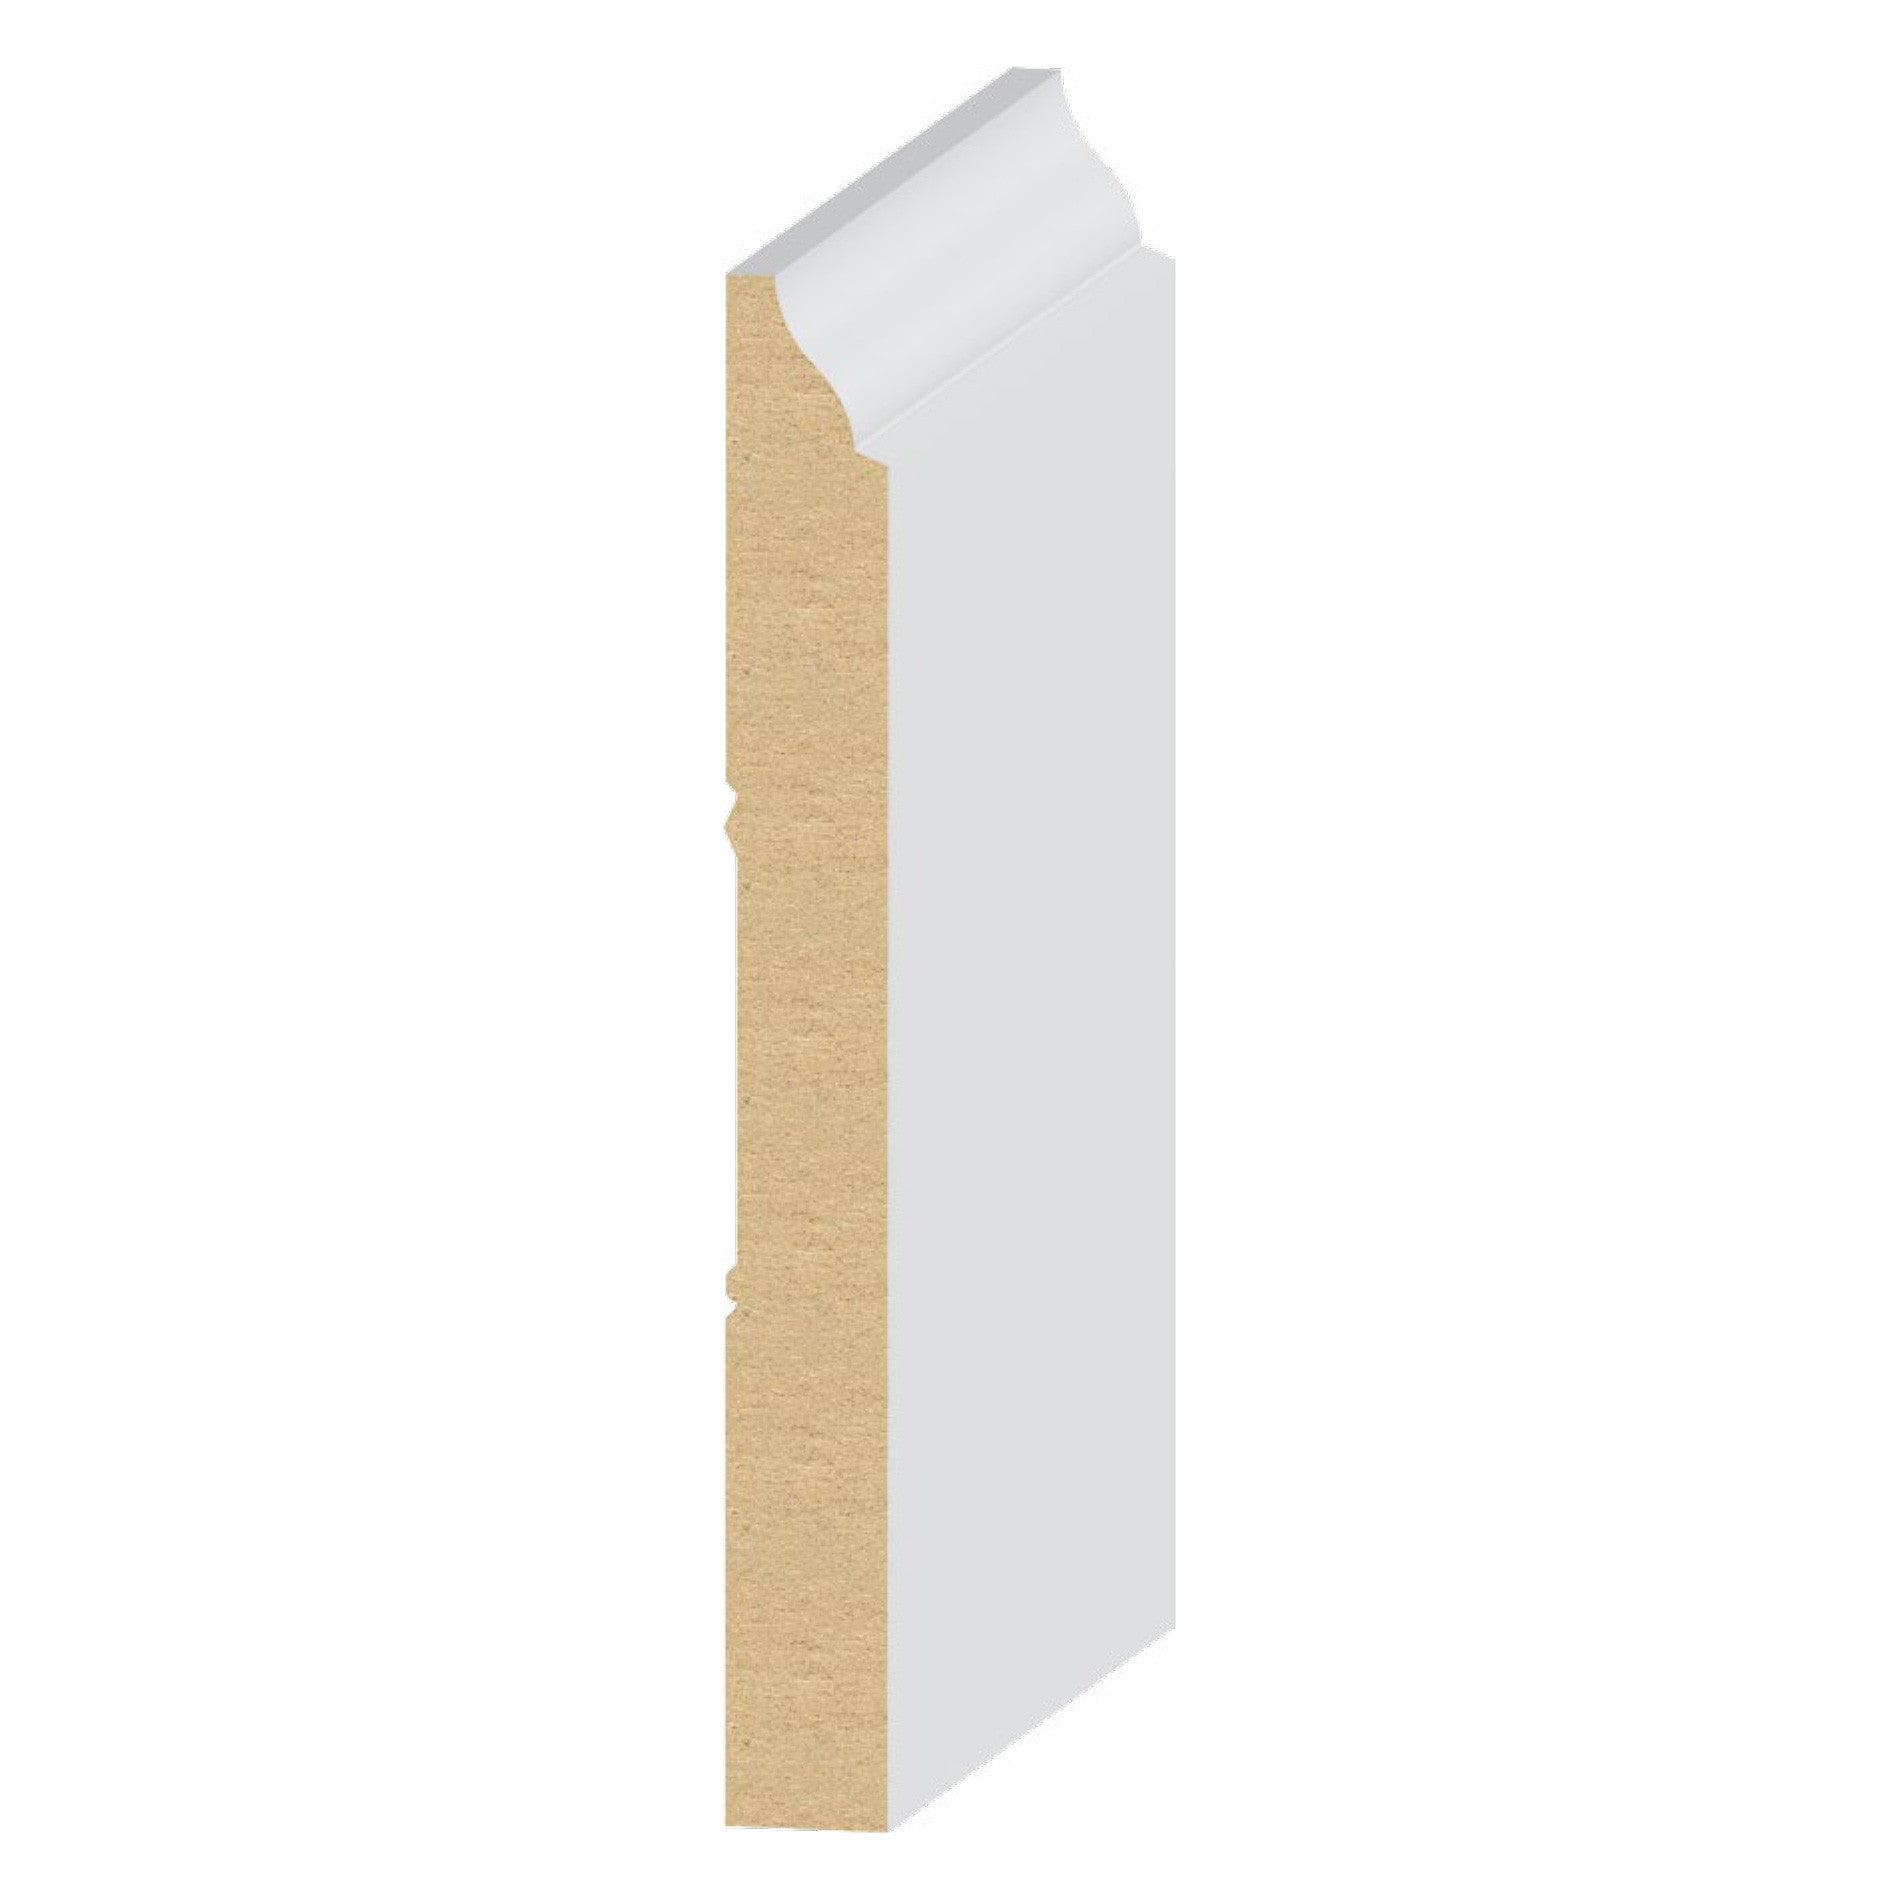 #618 Base 5 1/4'' Molding 315MUL - Baseboard by EL and